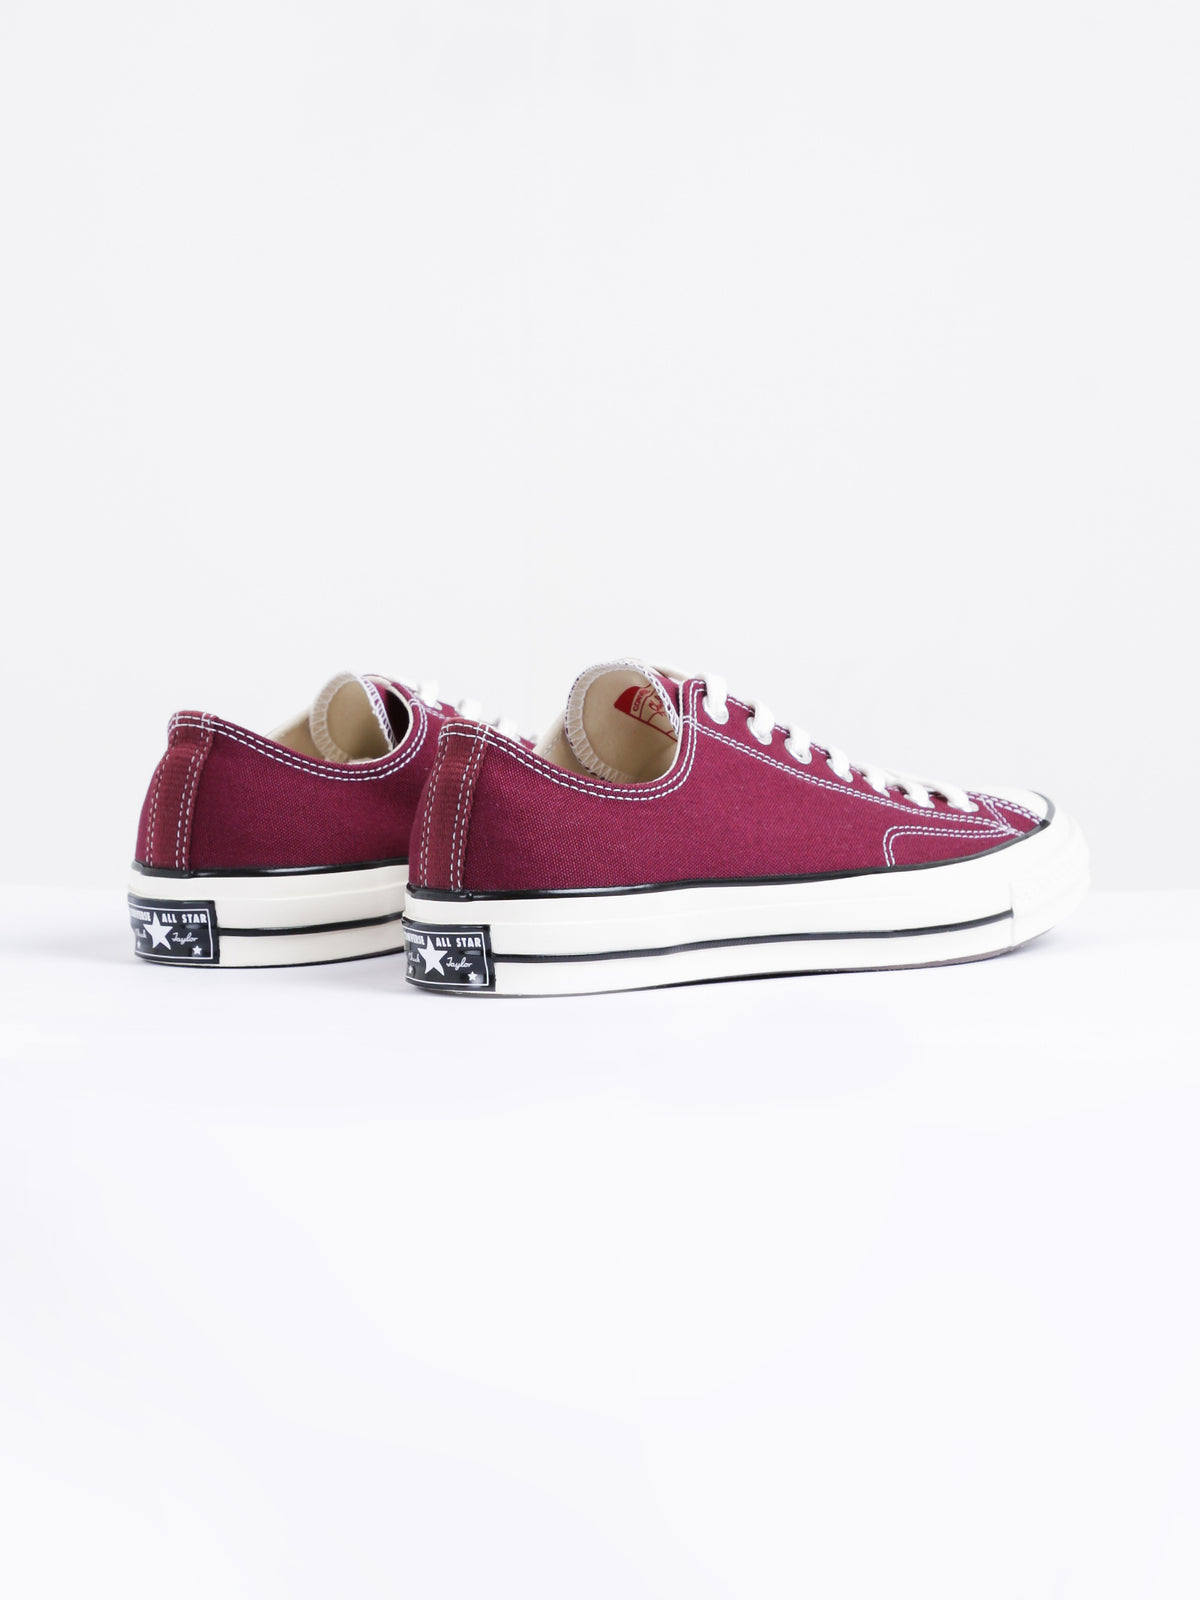 Mens Chuck Taylor All Star Low Top Sneakers in Obsidian Red